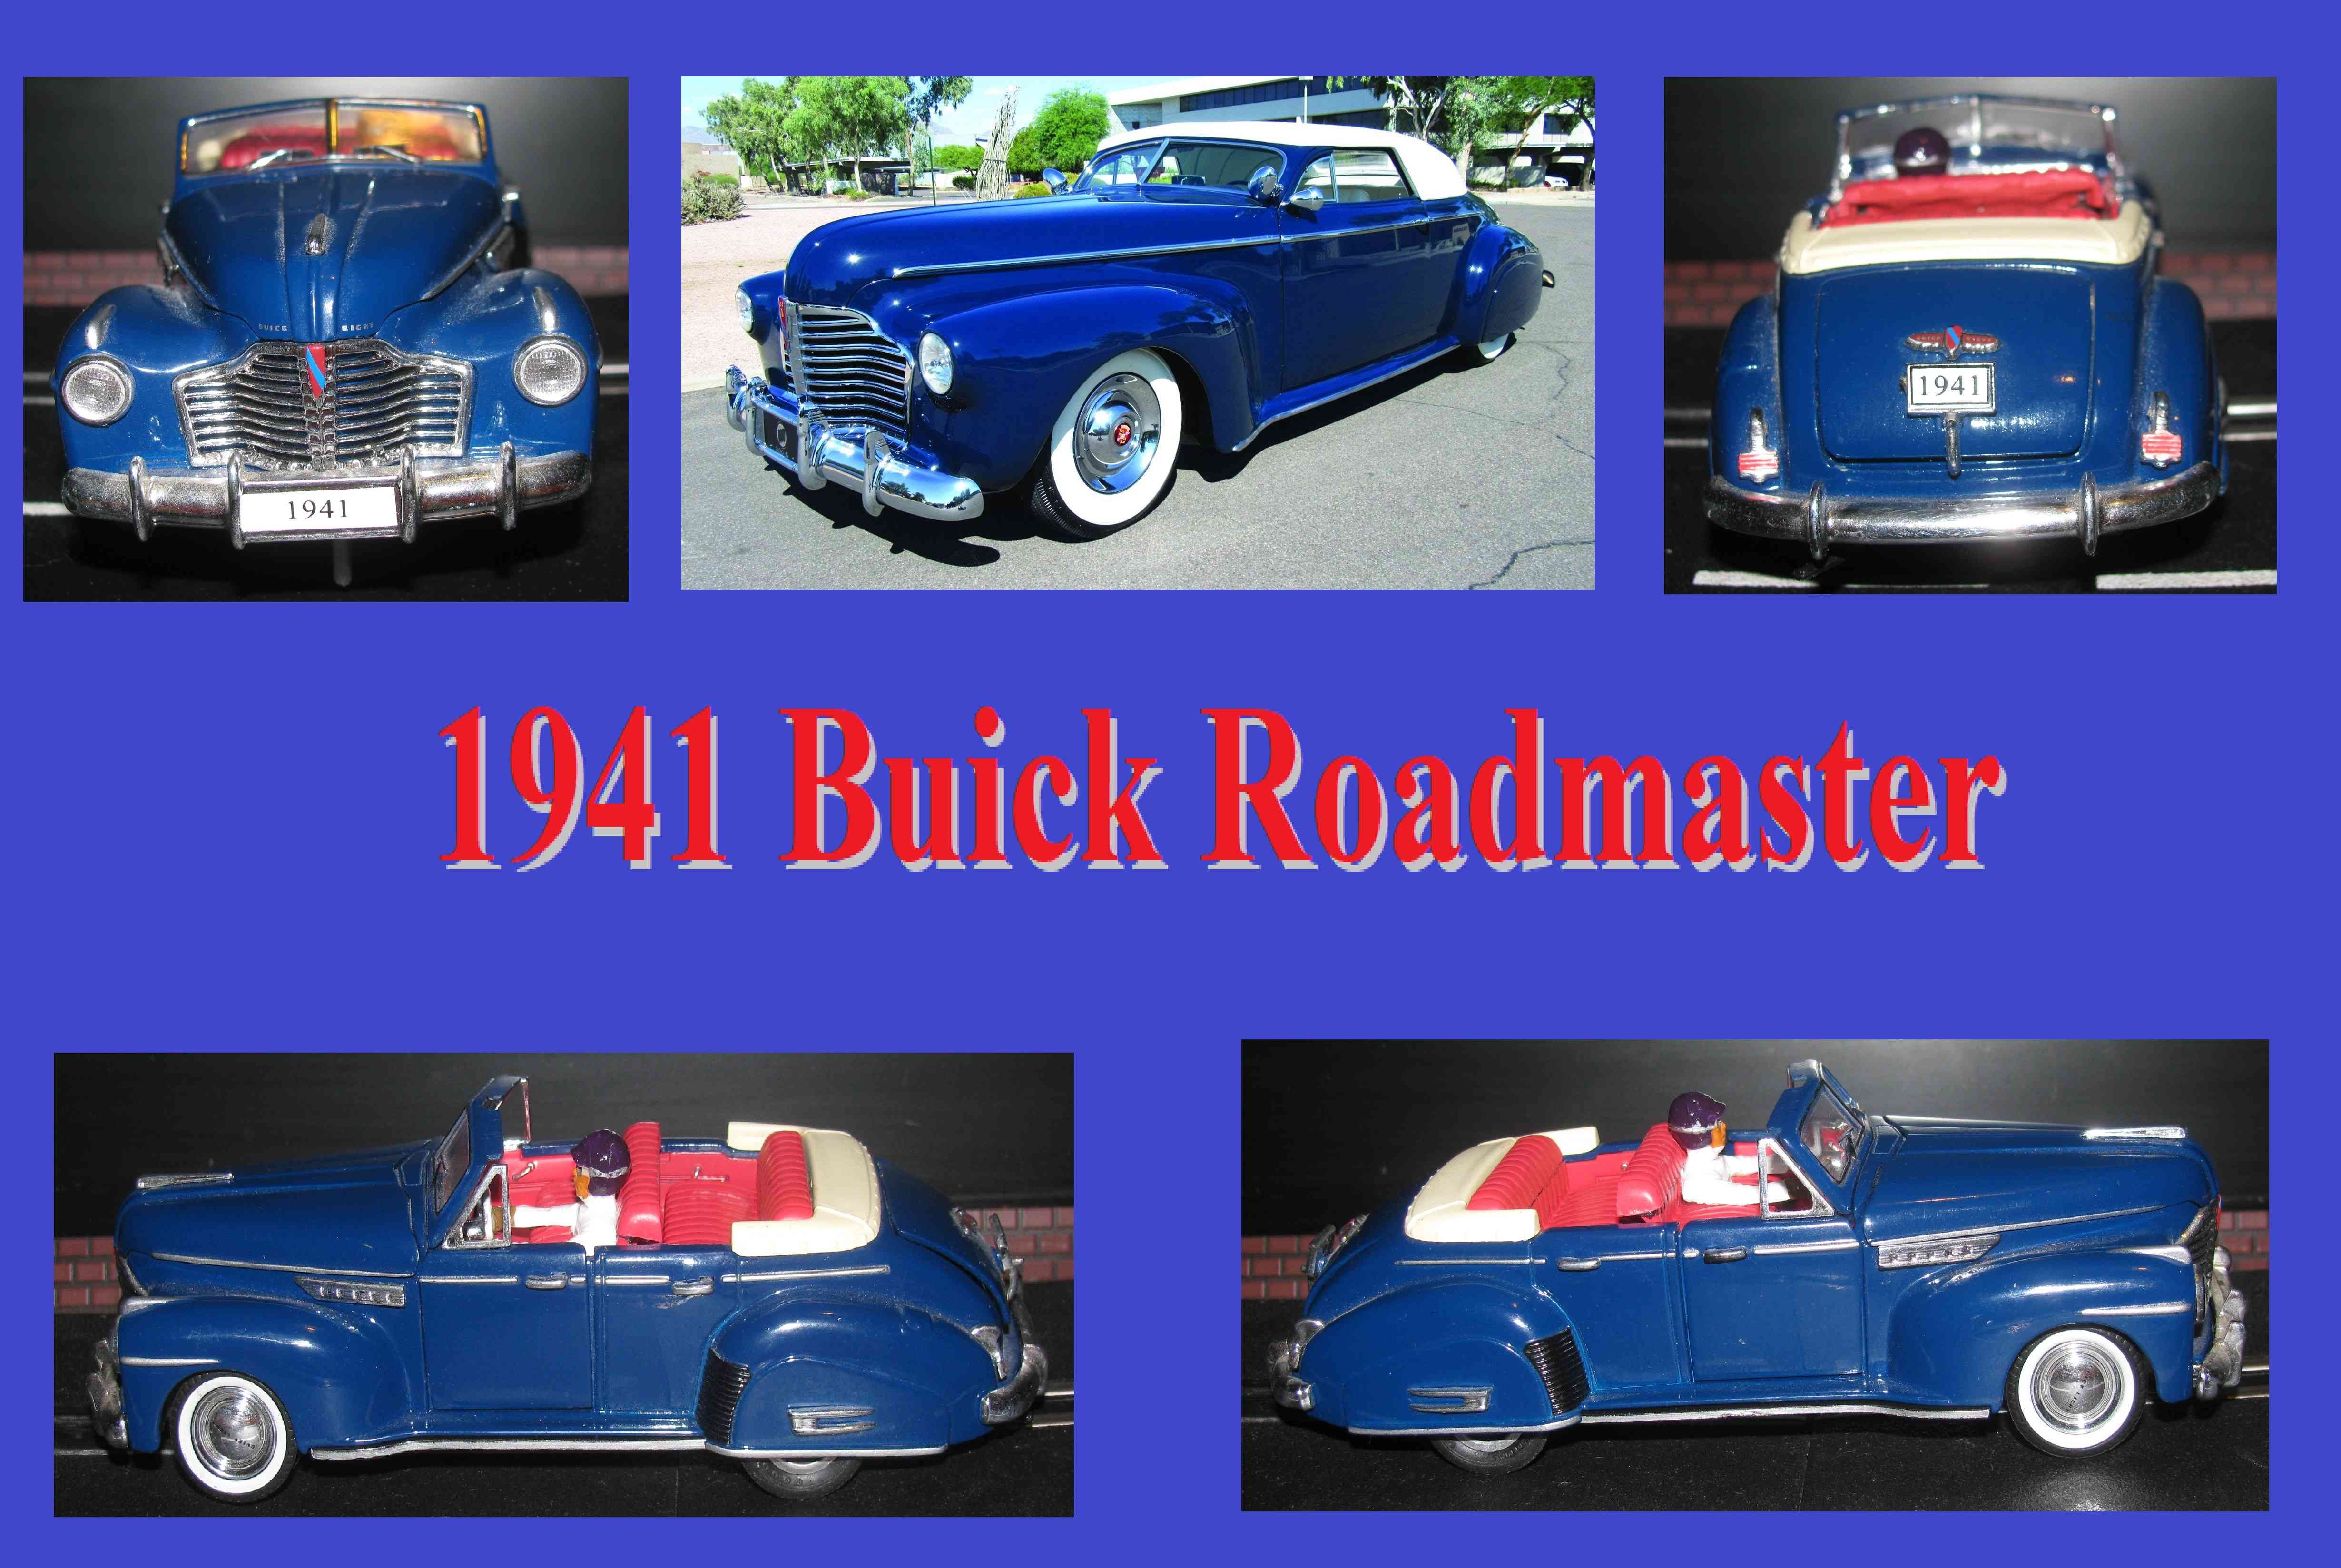 * Super Sale * 1941 Buick Roadmaster Slot Car 1:32 Scale Heavy Hitter with loads of power